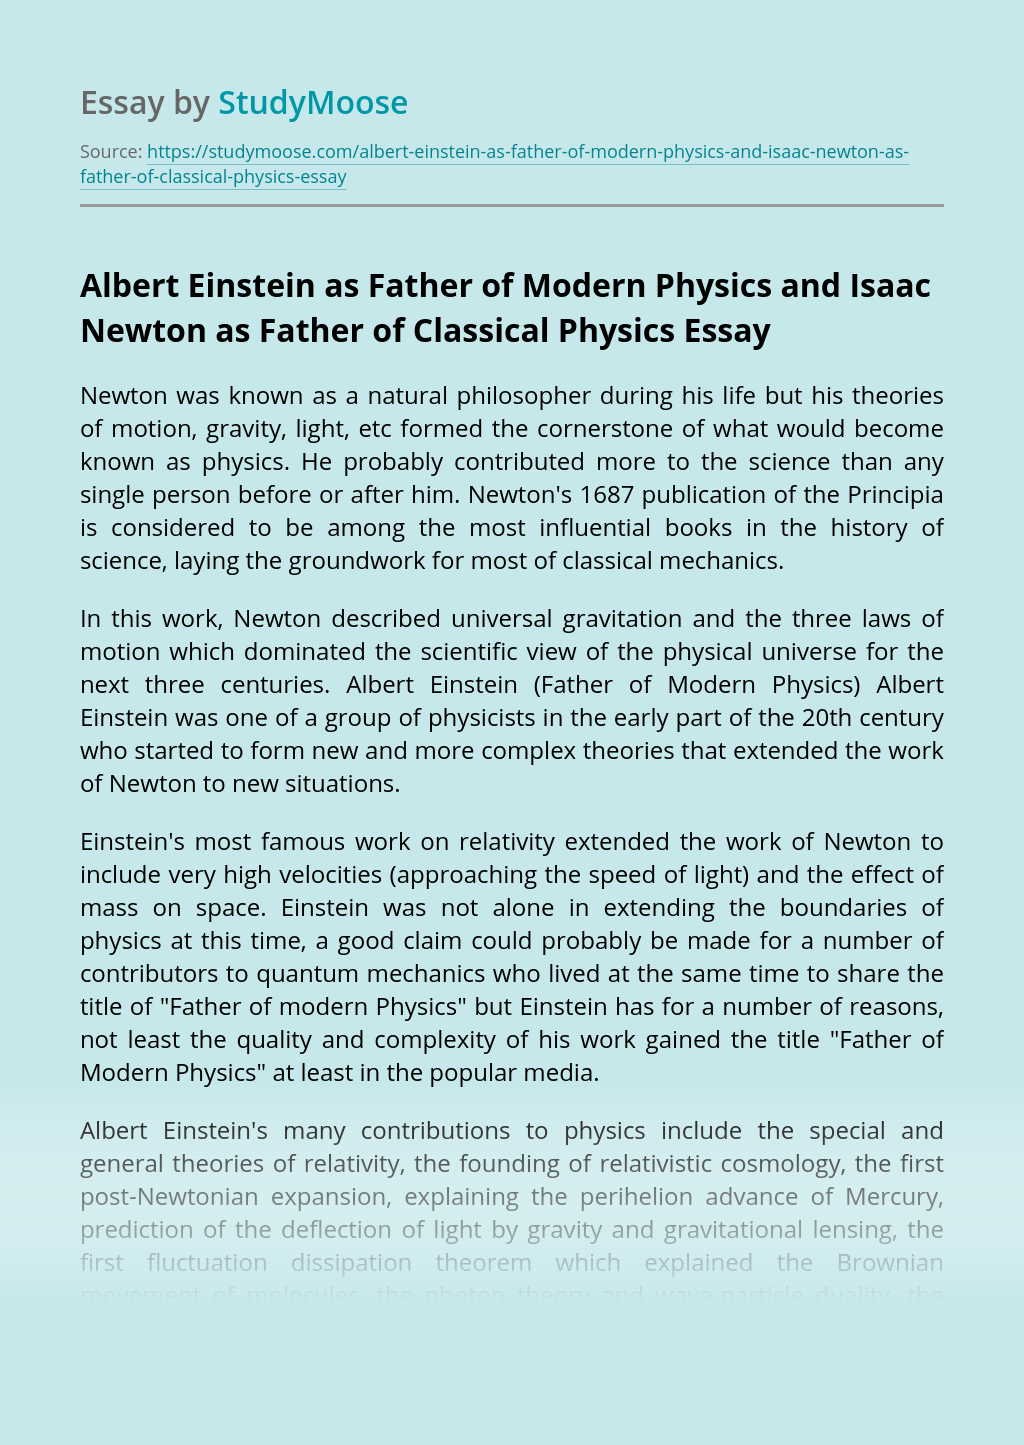 Albert Einstein as Father of Modern Physics and Isaac Newton as Father of Classical Physics